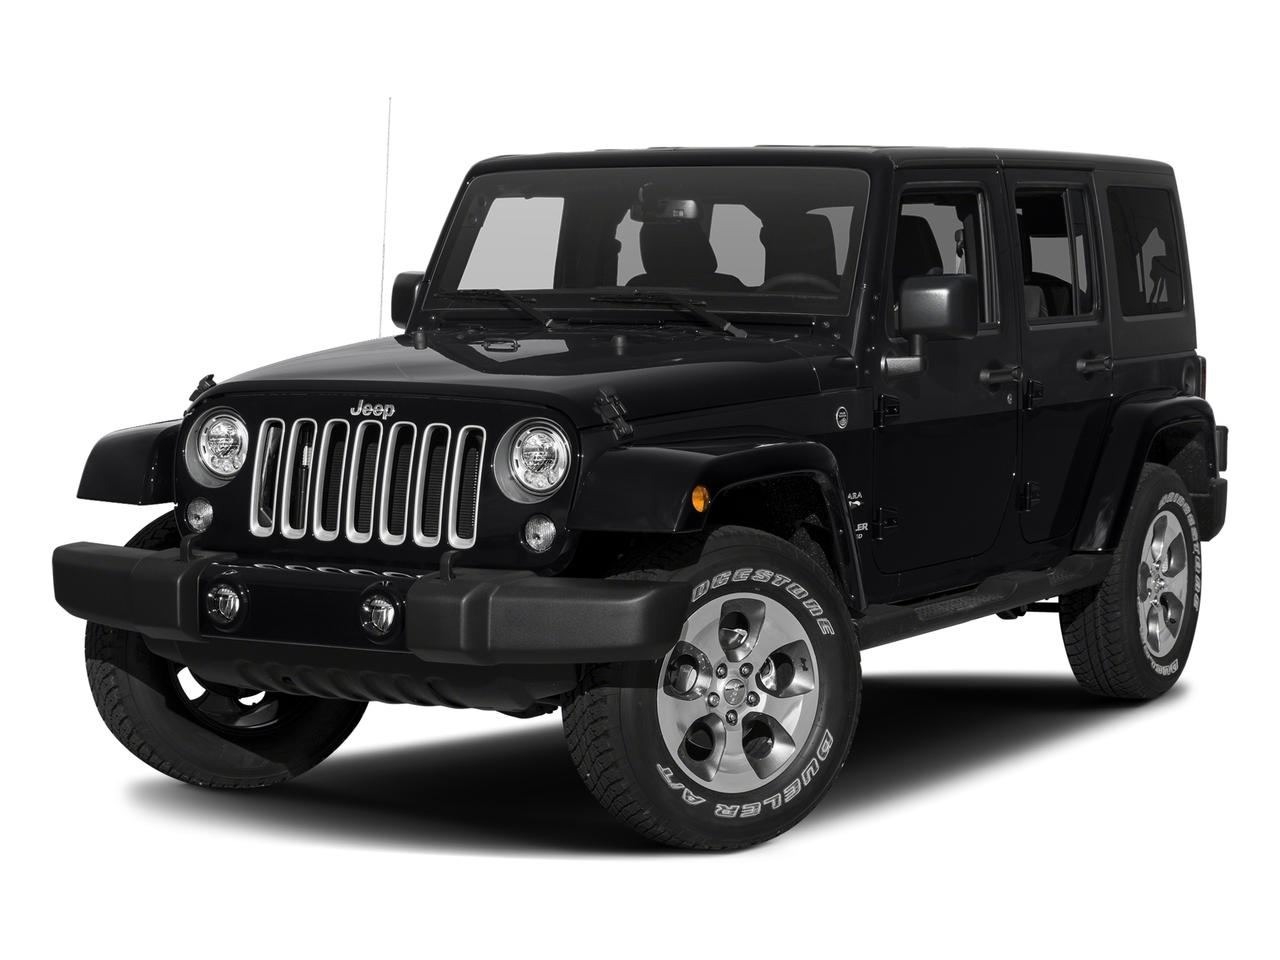 2017 Jeep Wrangler Unlimited Vehicle Photo in Fort Worth, TX 76116